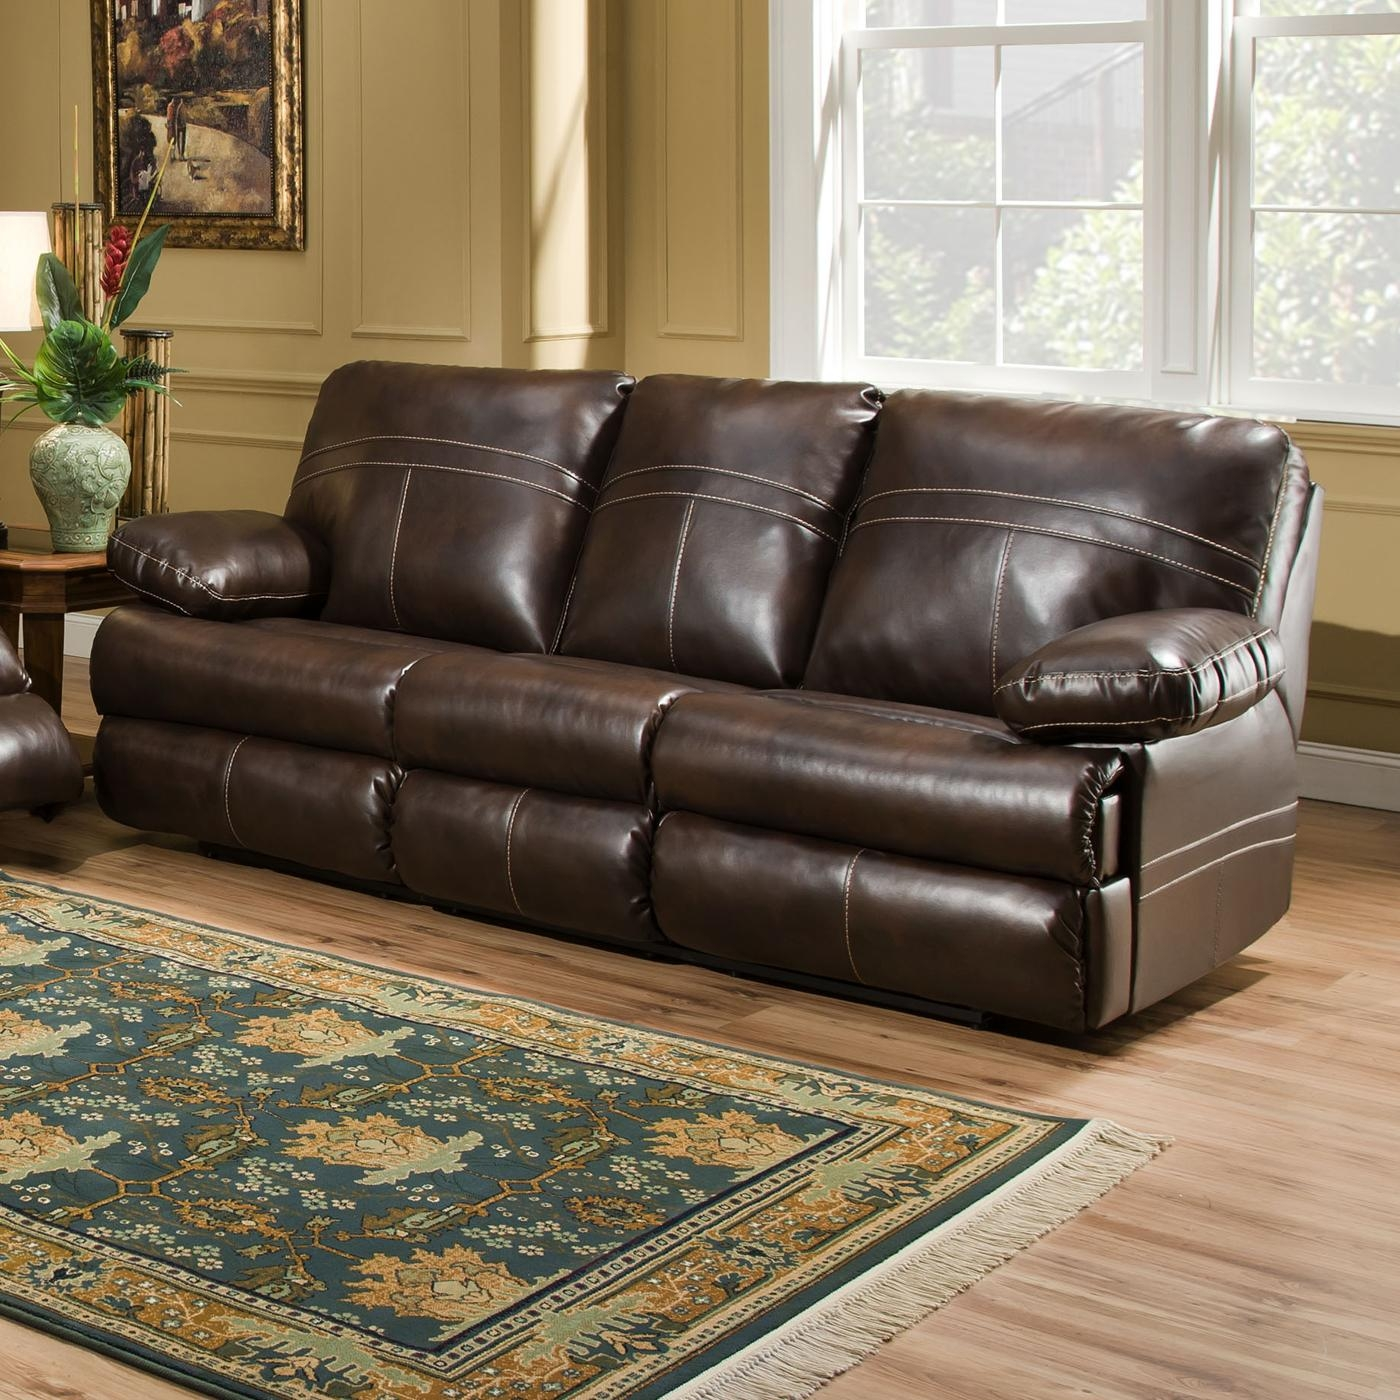 Simmons Bonded Leather Sofa With Ideas Image 20563 | Kengire For Simmons Bonded Leather Sofas (View 4 of 20)